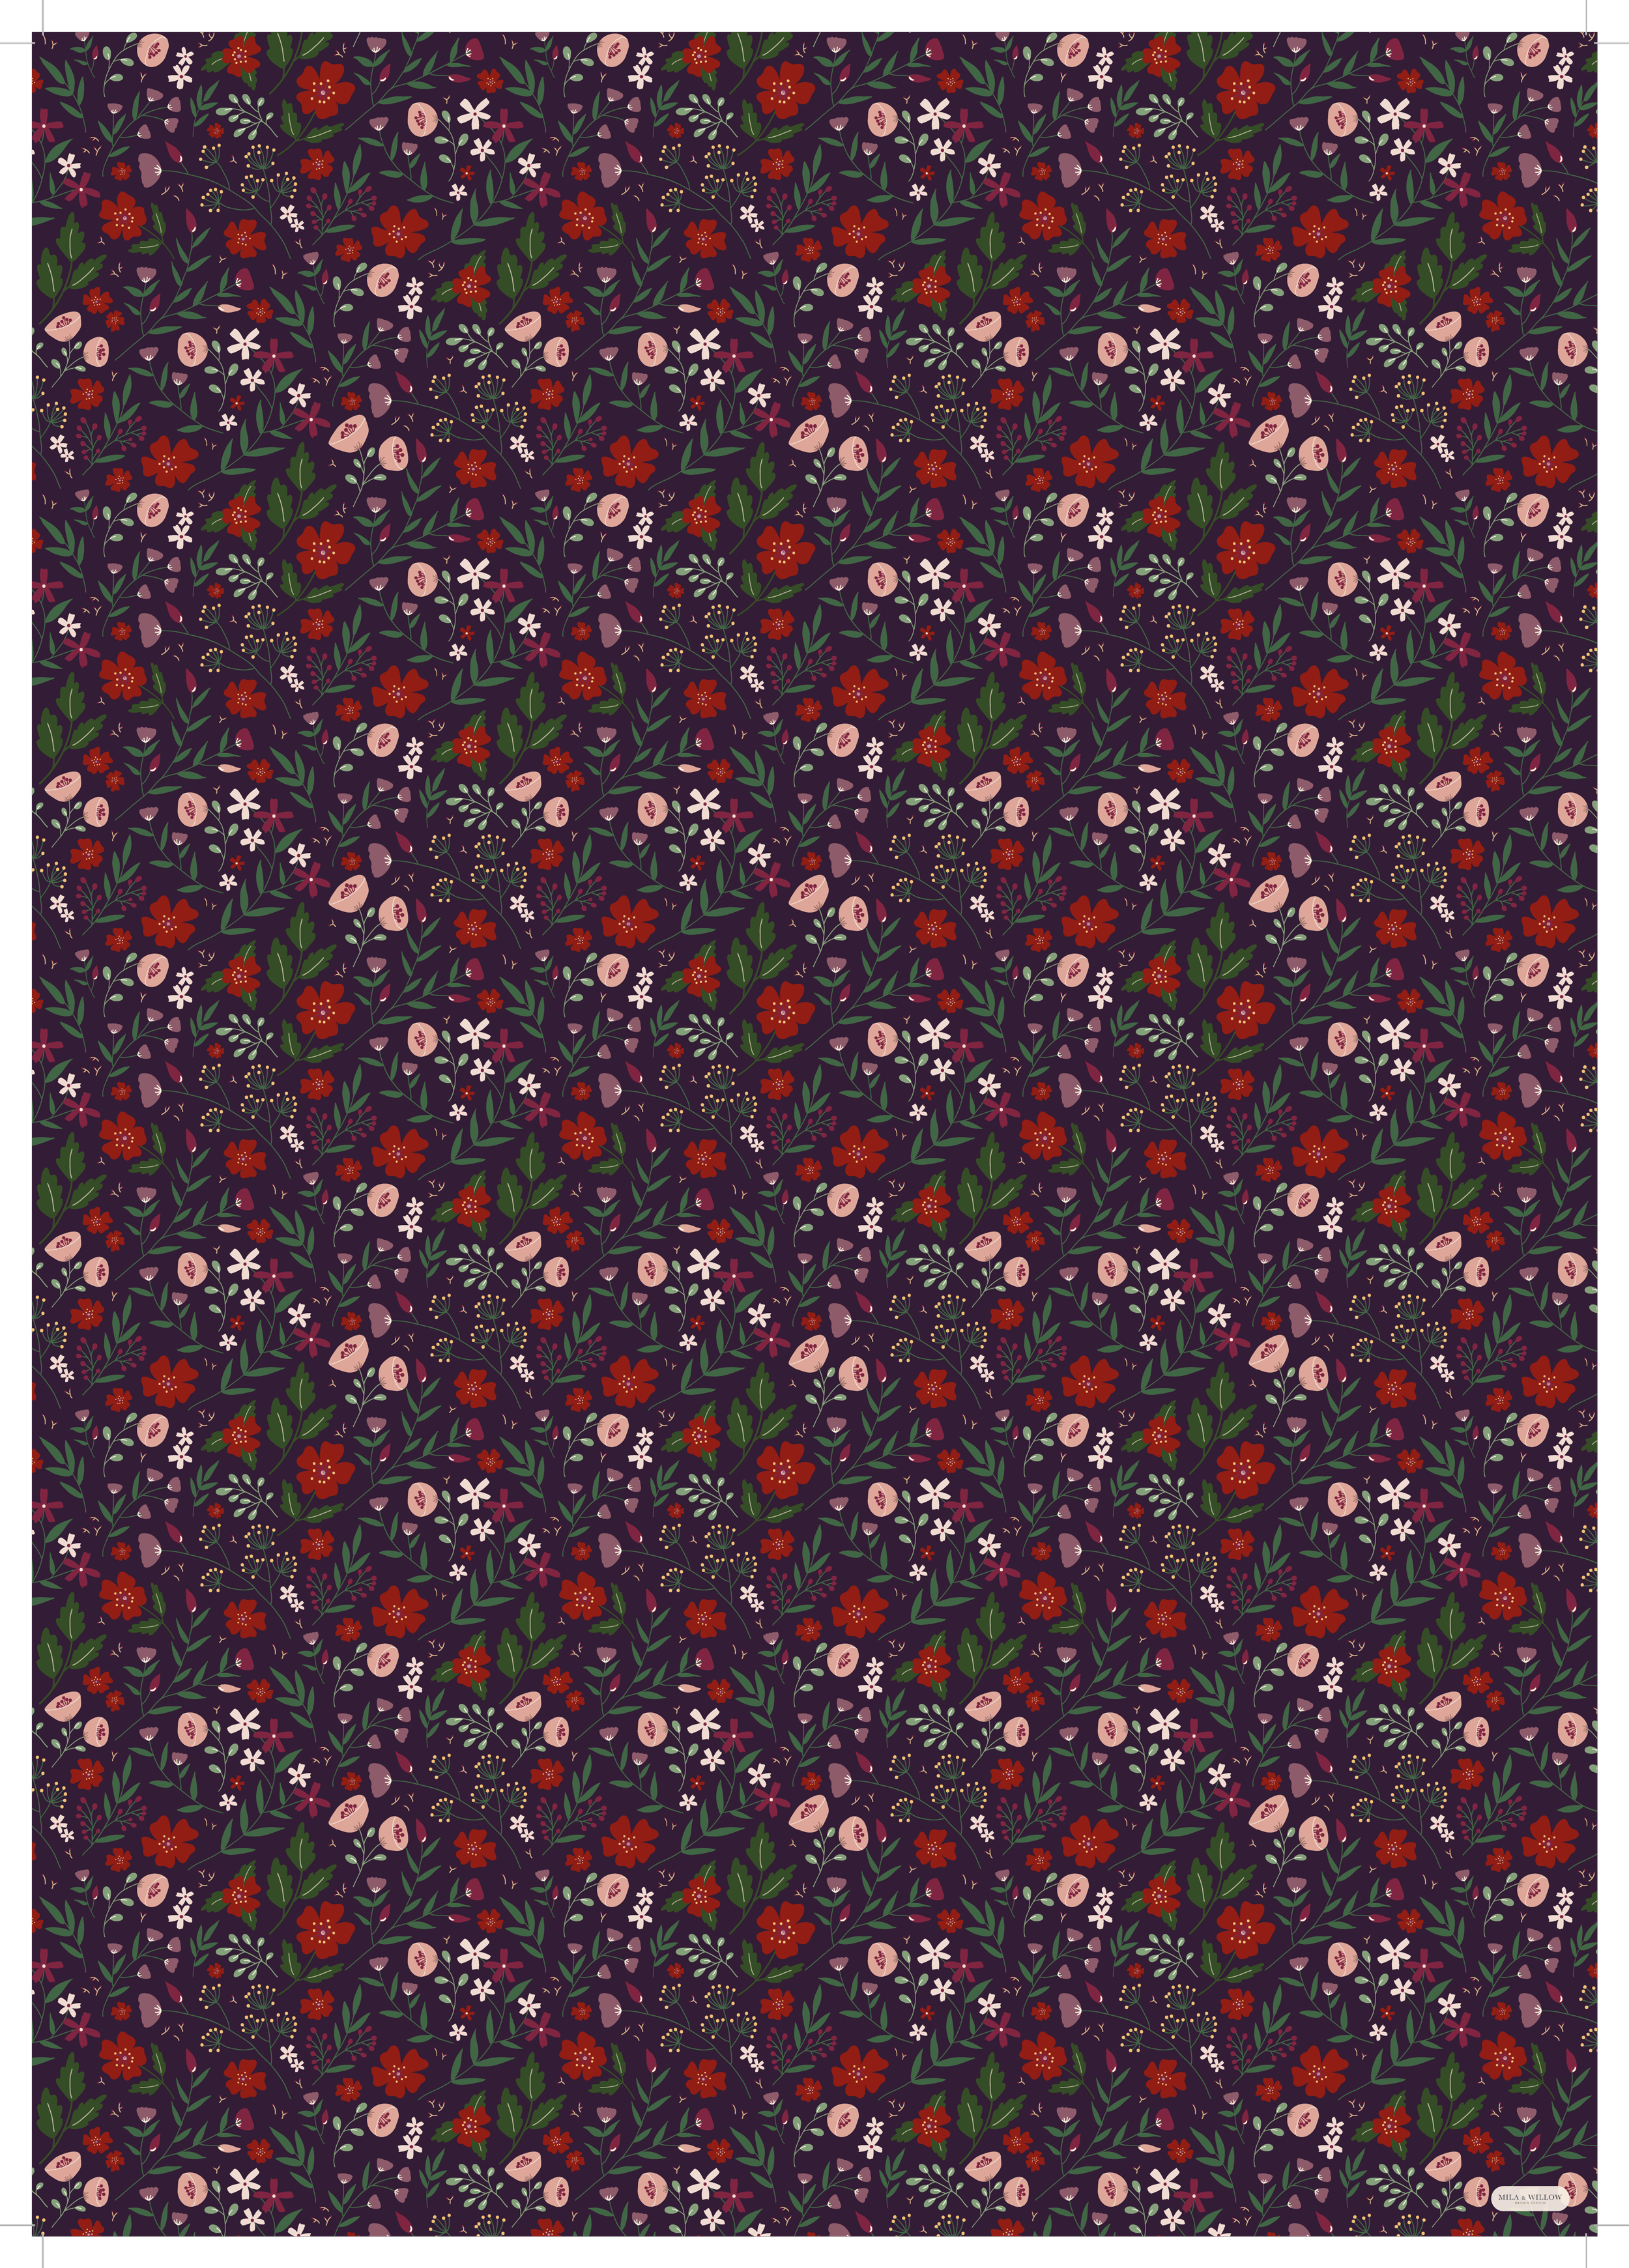 Illustrated wrapping paper with a lovely dark floral pattern on a plum background.